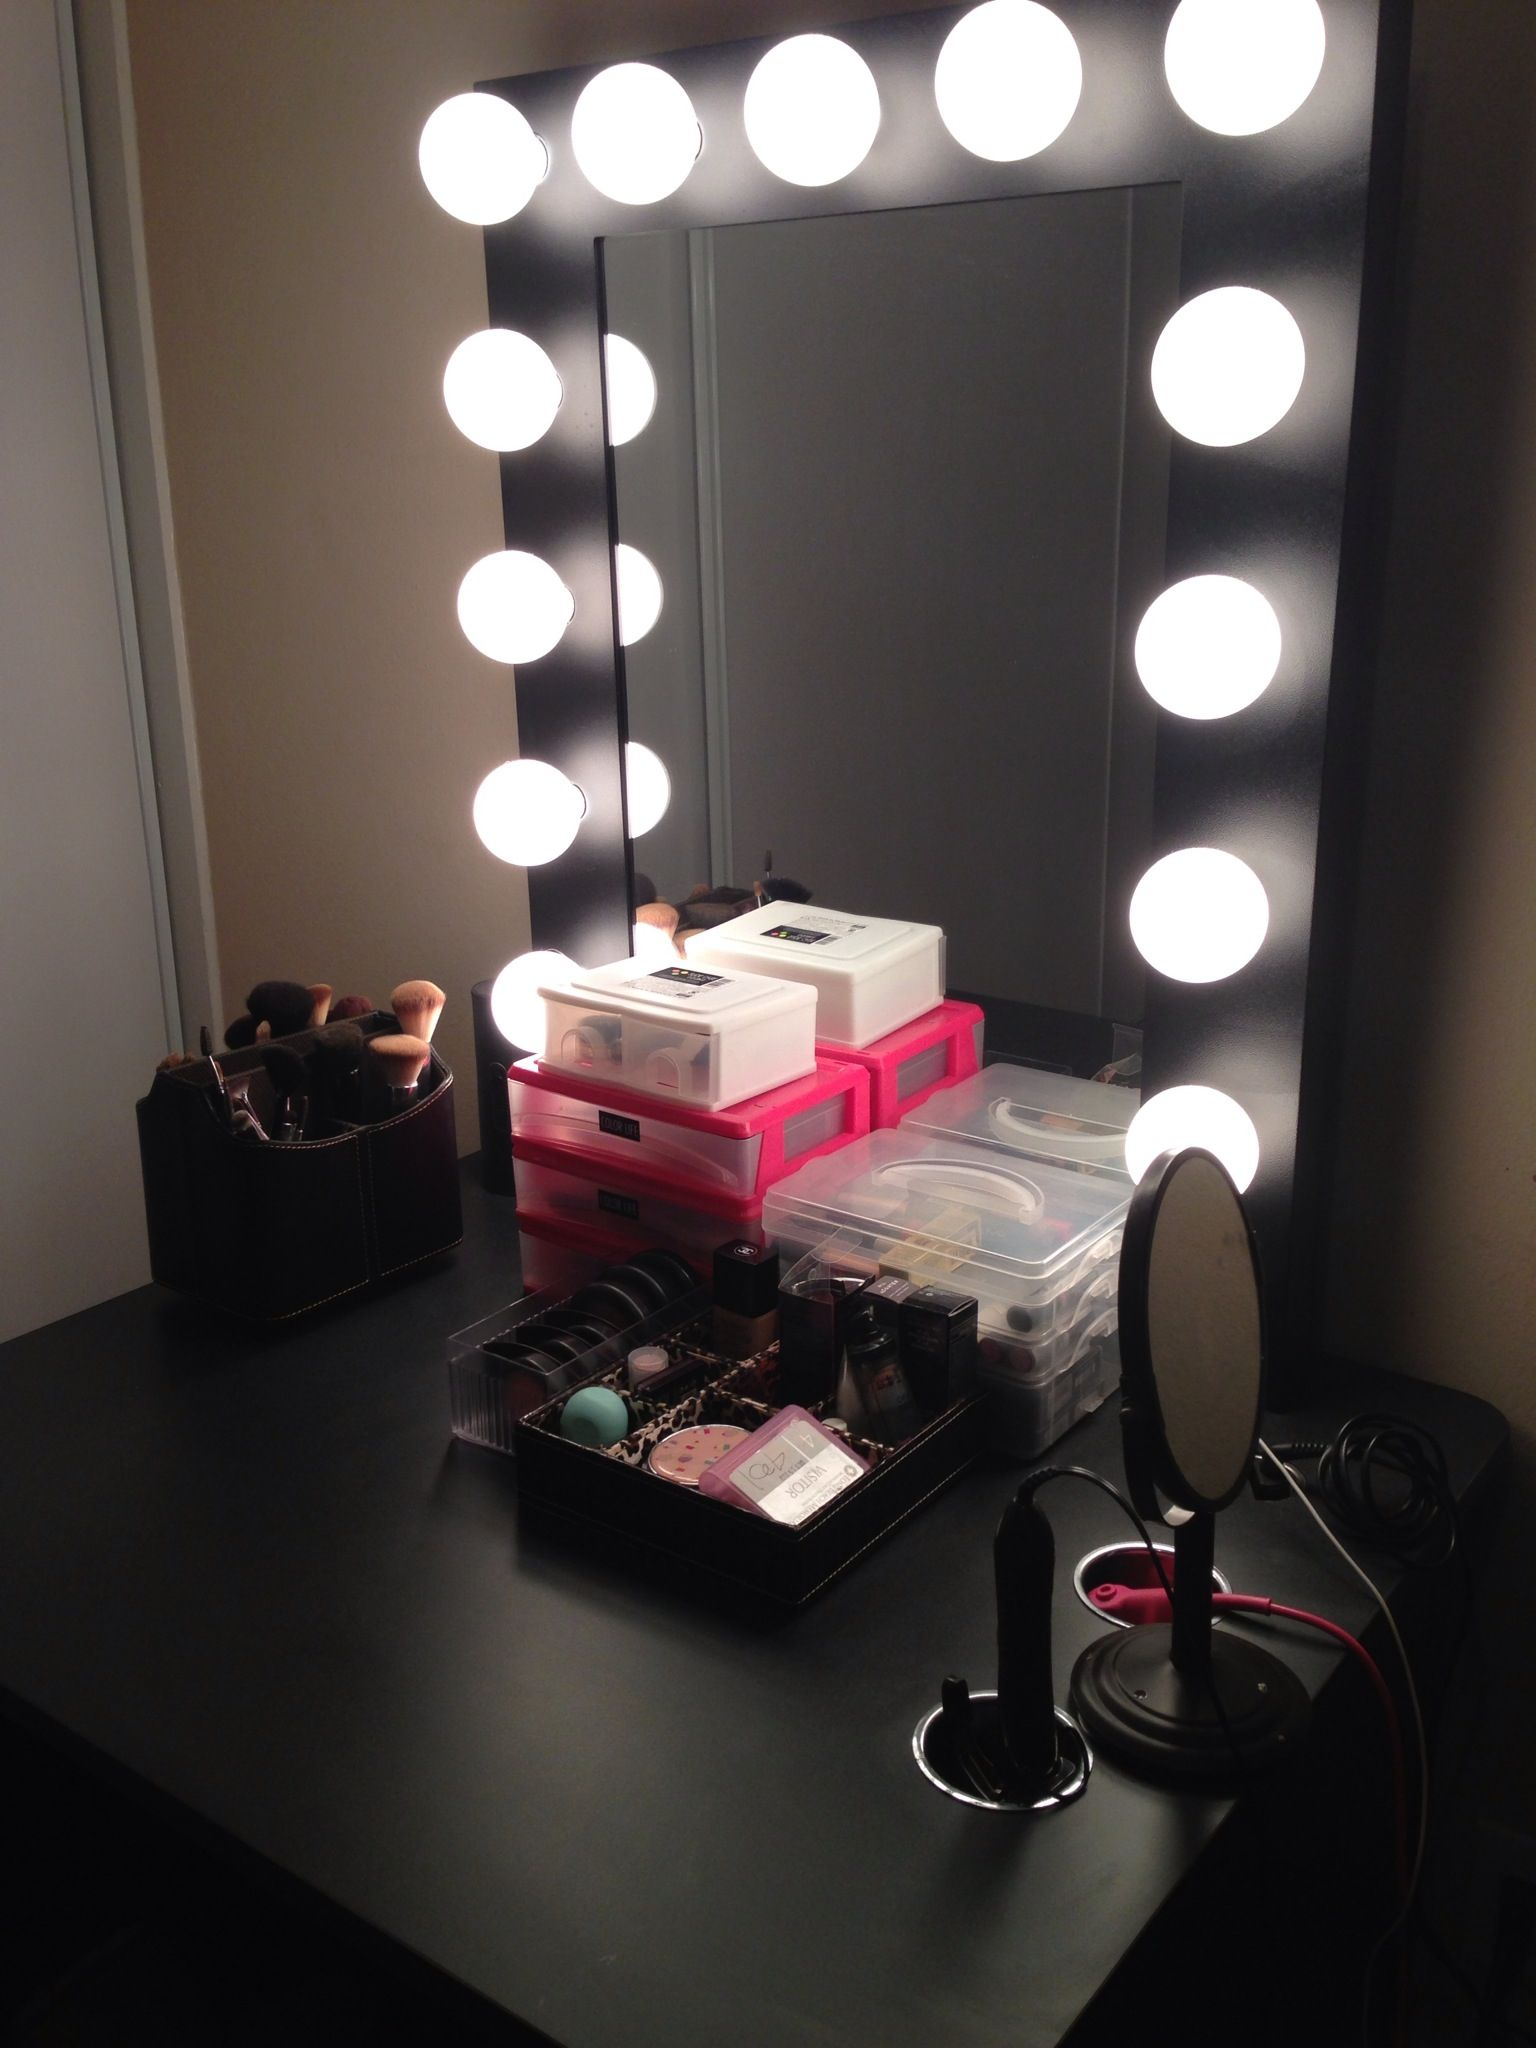 Vanity Lights Hollywood : Vanity set #vanity girl hollywood I think I need this:) Pinterest Vanity set, Vanities and ...